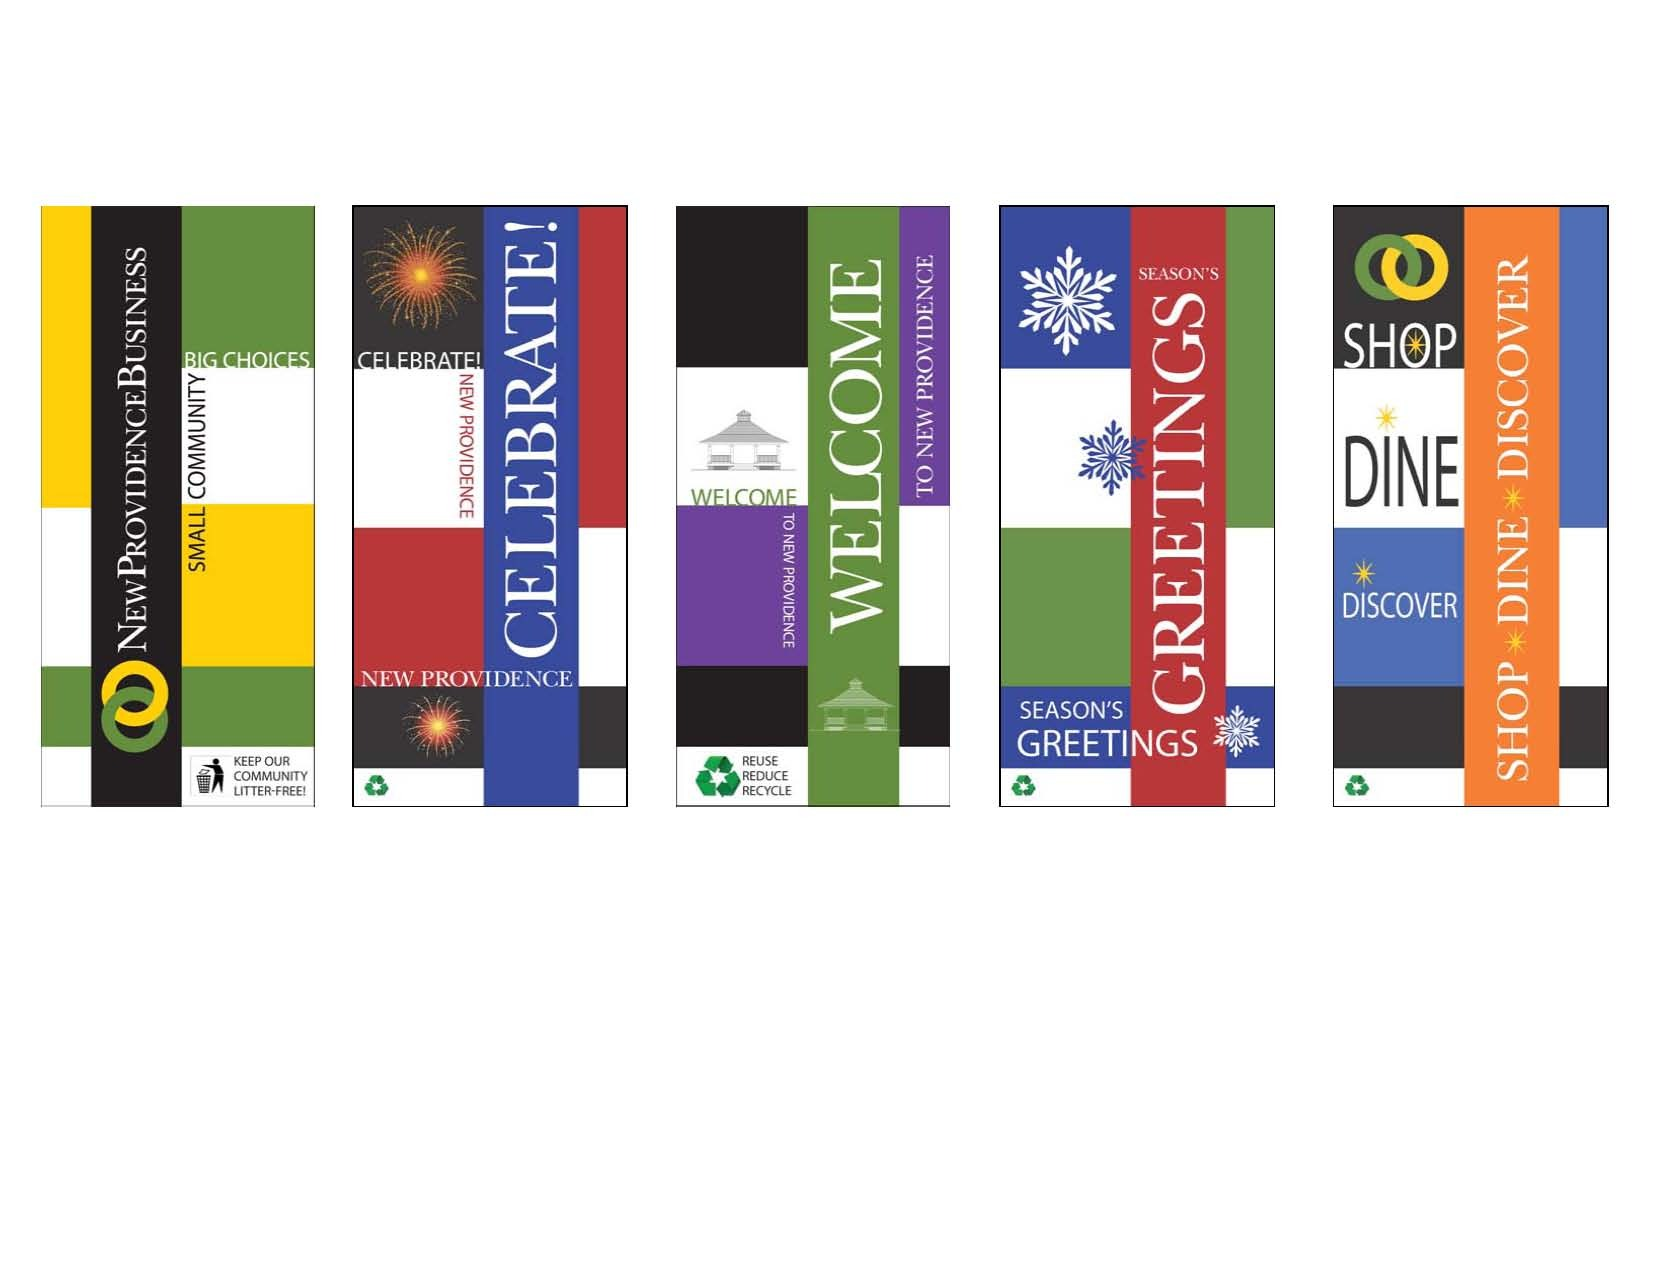 191b66619291a6d5faf7_Combined_banners_horizontal.jpg